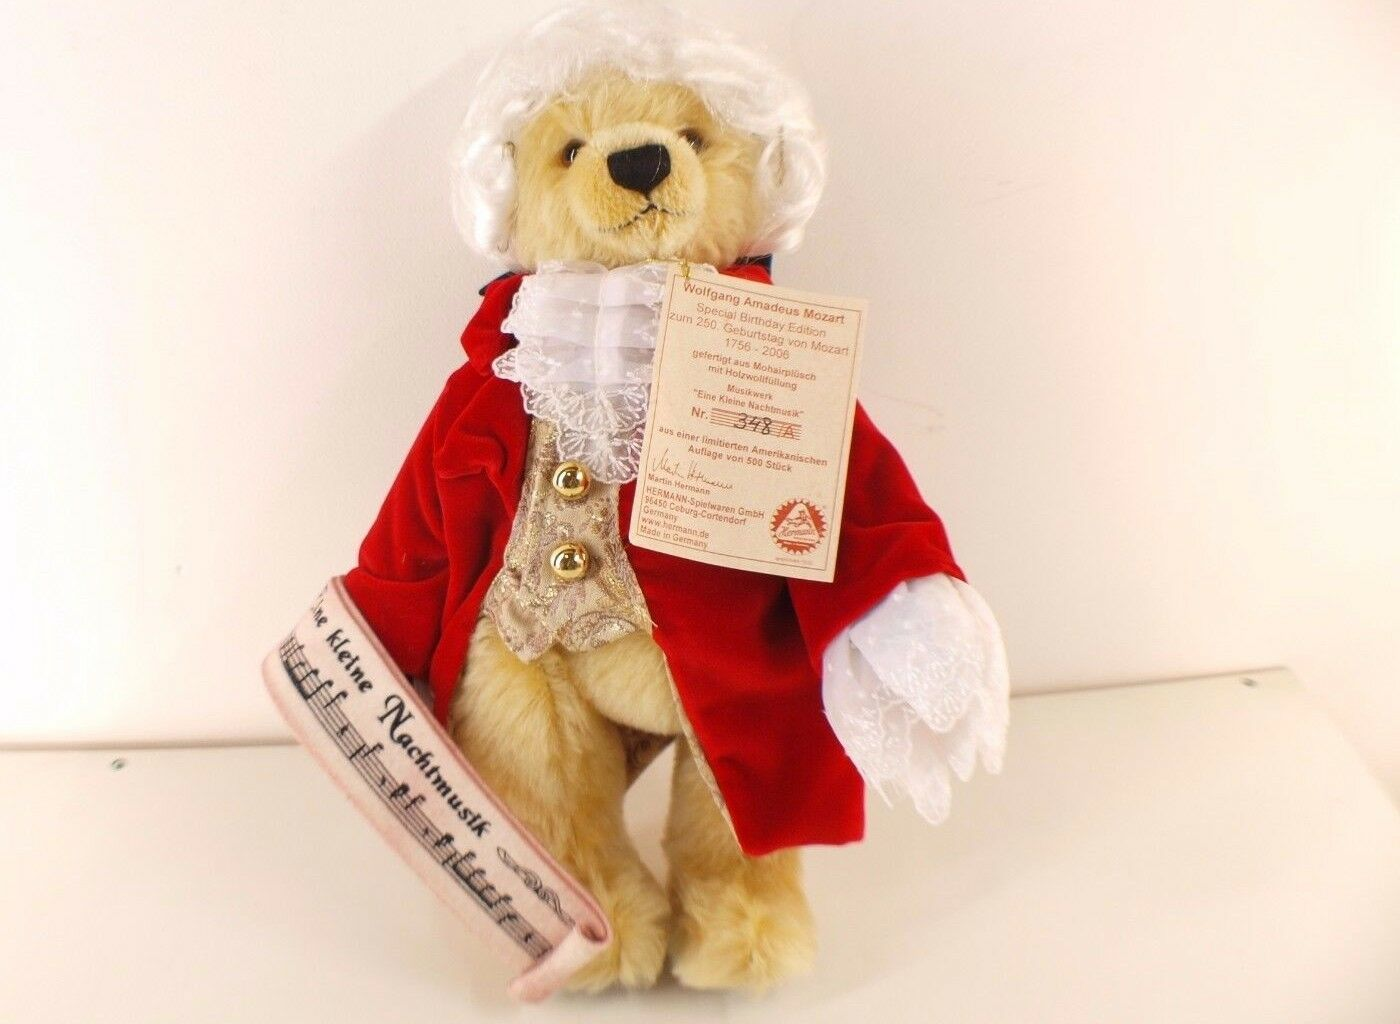 Hermann ours Bear Wolfgang Mozart nounours peluche 38 cm neuf edition limited